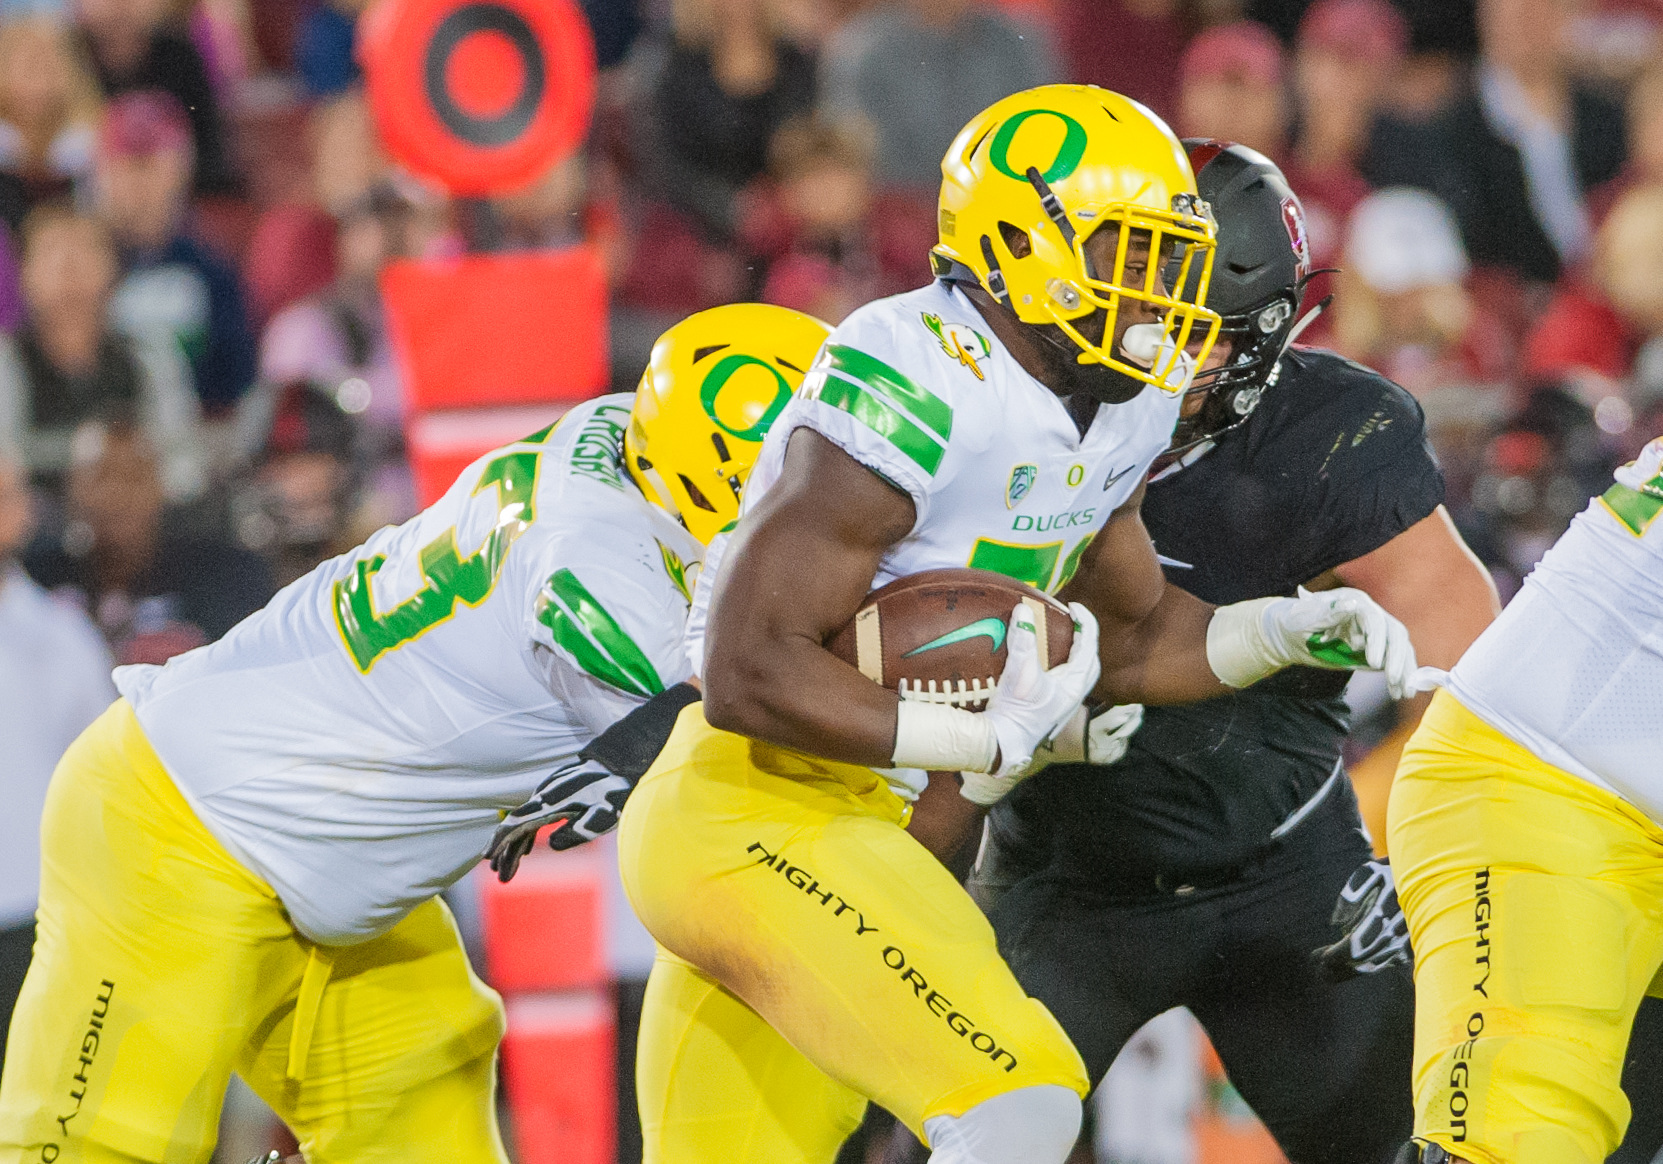 COLLEGE FOOTBALL: OCT 14 Oregon at Stanford